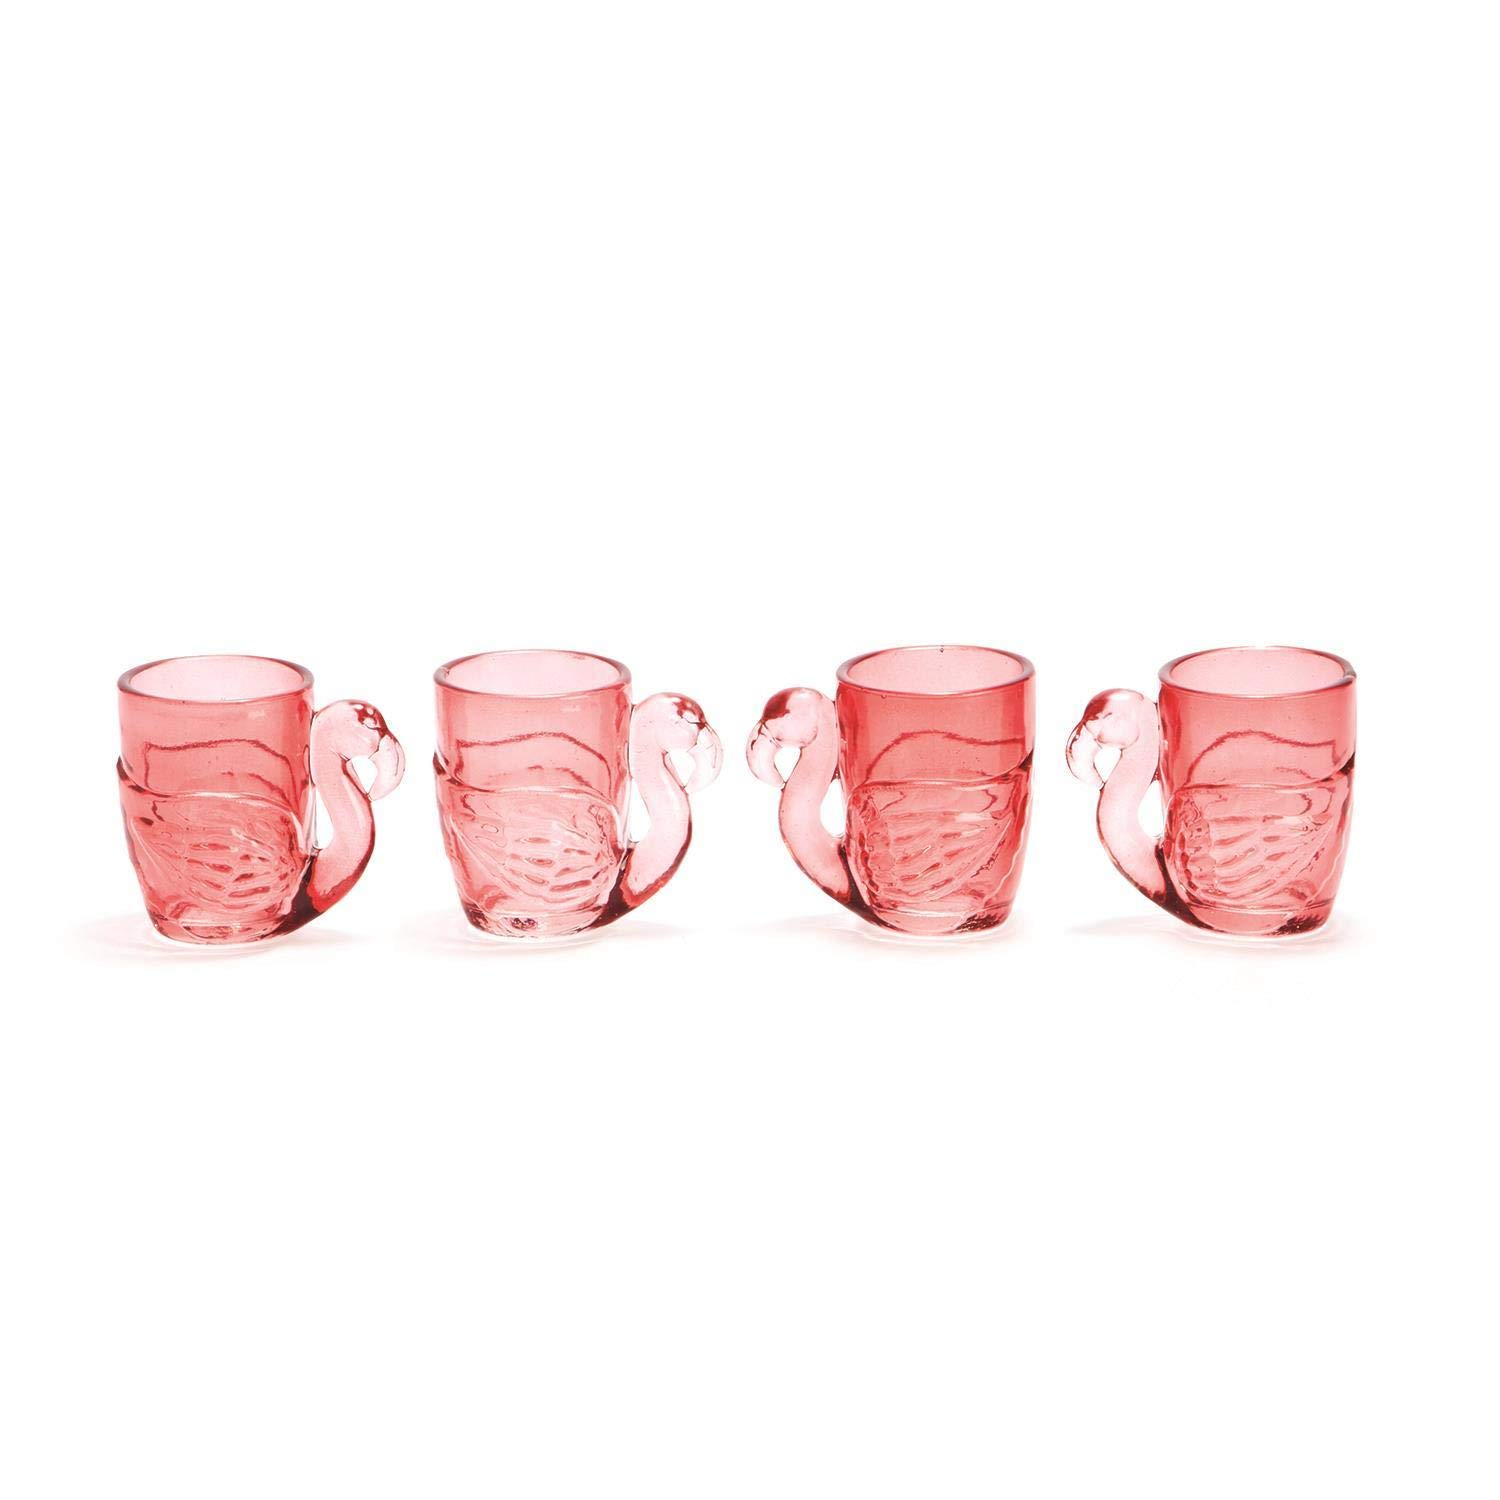 Two's Company Pink Flamingo Shot Glasses in Gift Box Set of 4